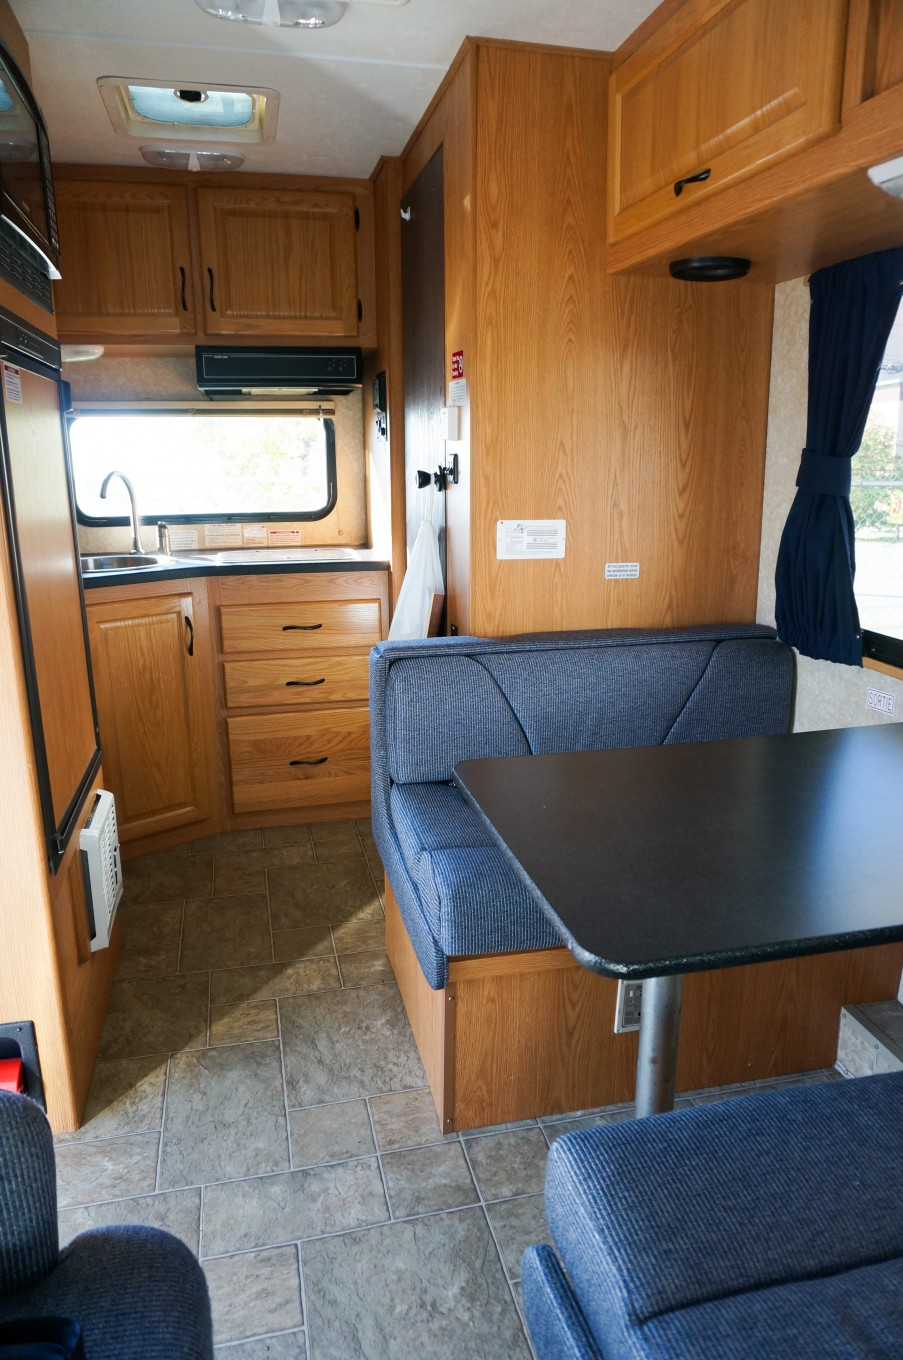 Our Most Recent RV Rental Relocation (pictured Above) Was A Compact RV That  Sleeps 3 And Has A Toilet, Shower, And Small Kitchenette With A Fridge.